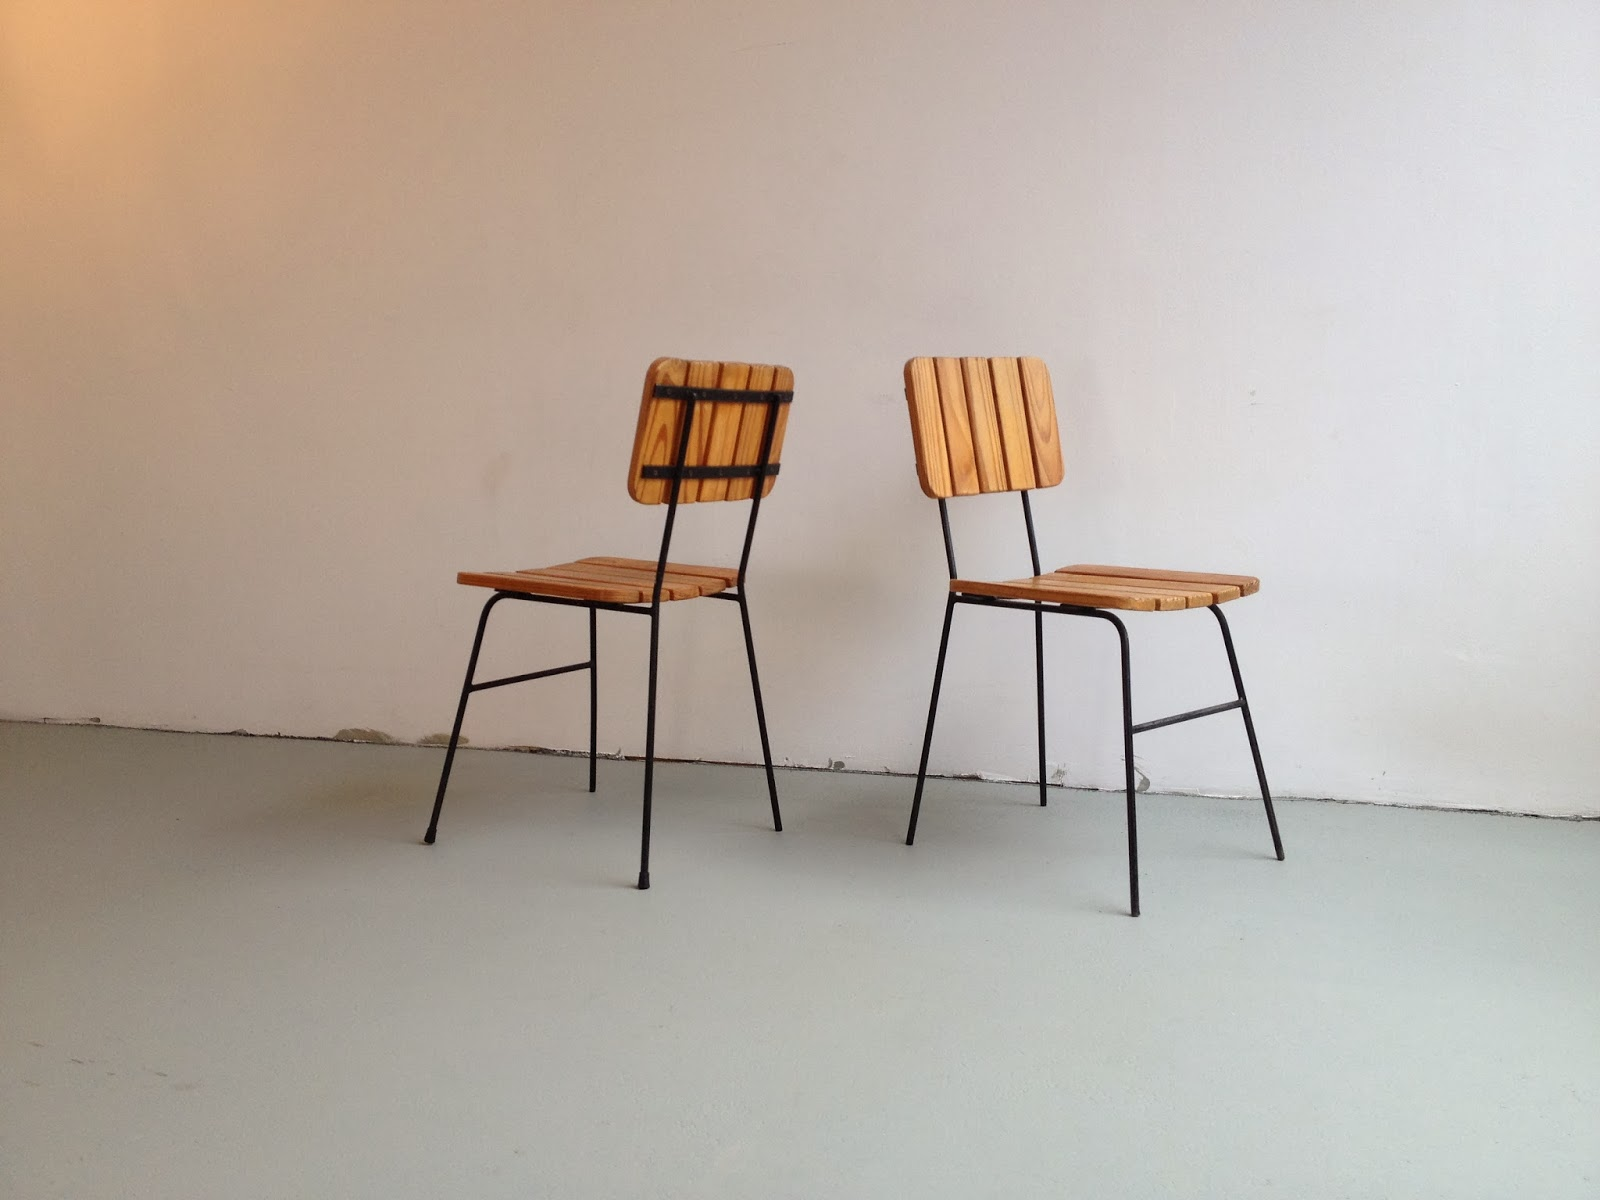 Tolve art design sold sixties chairs in de style for Sixties style chairs